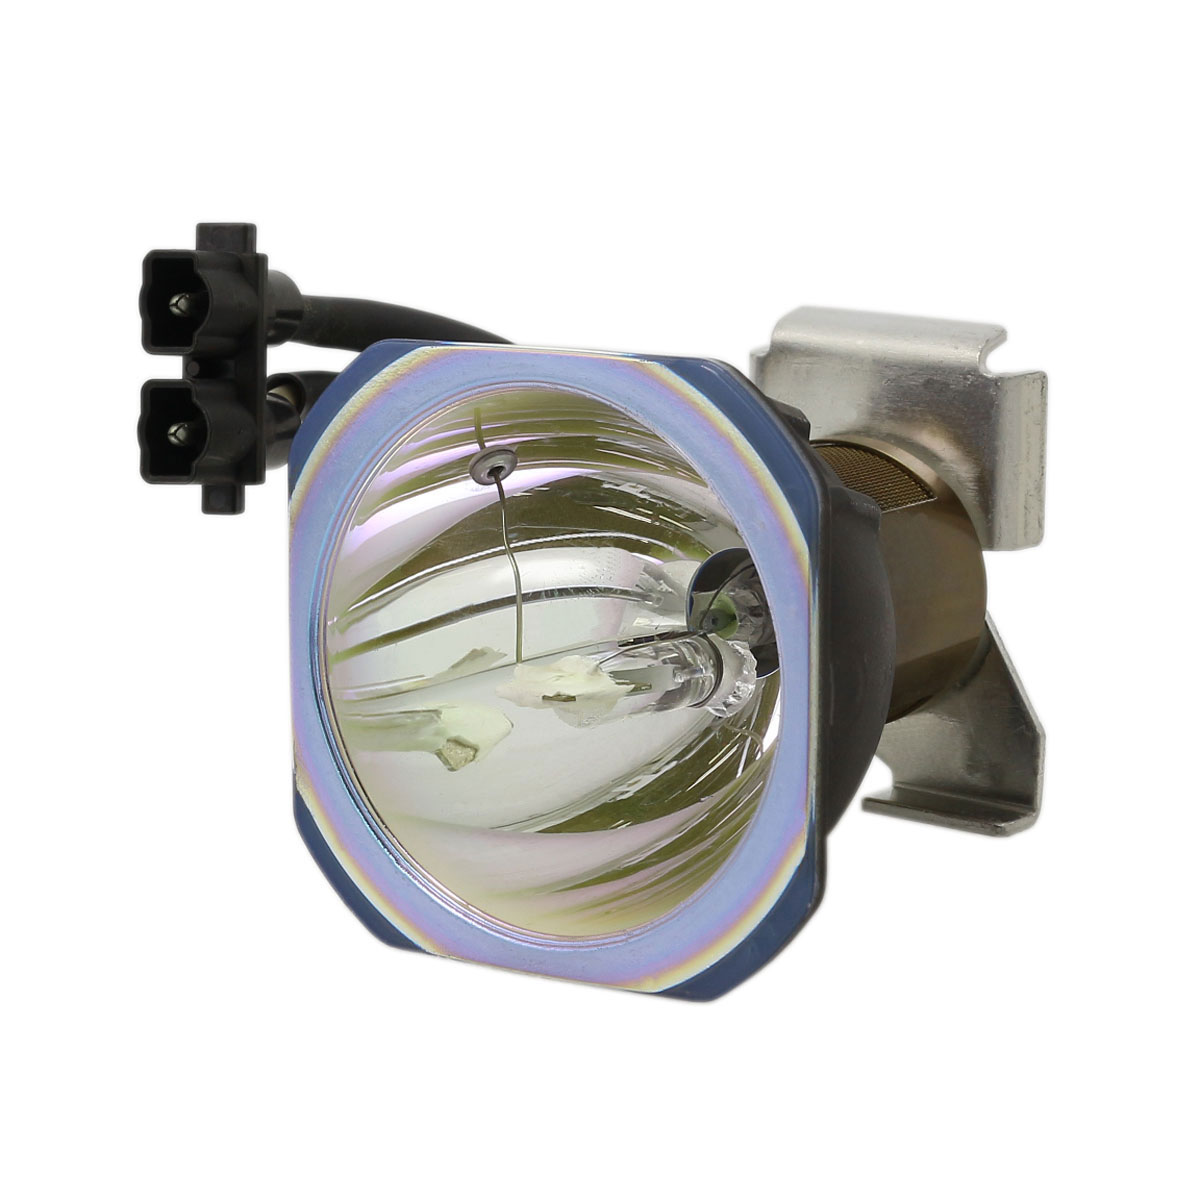 Compatible Bare Bulb AH-57201 AH57201 for EIKI EIP-1500T Projector Lamp Bulb without housing compatible bare bulb lv lp30 2481b001 for canon lv 7365 projector lamp bulb without housing